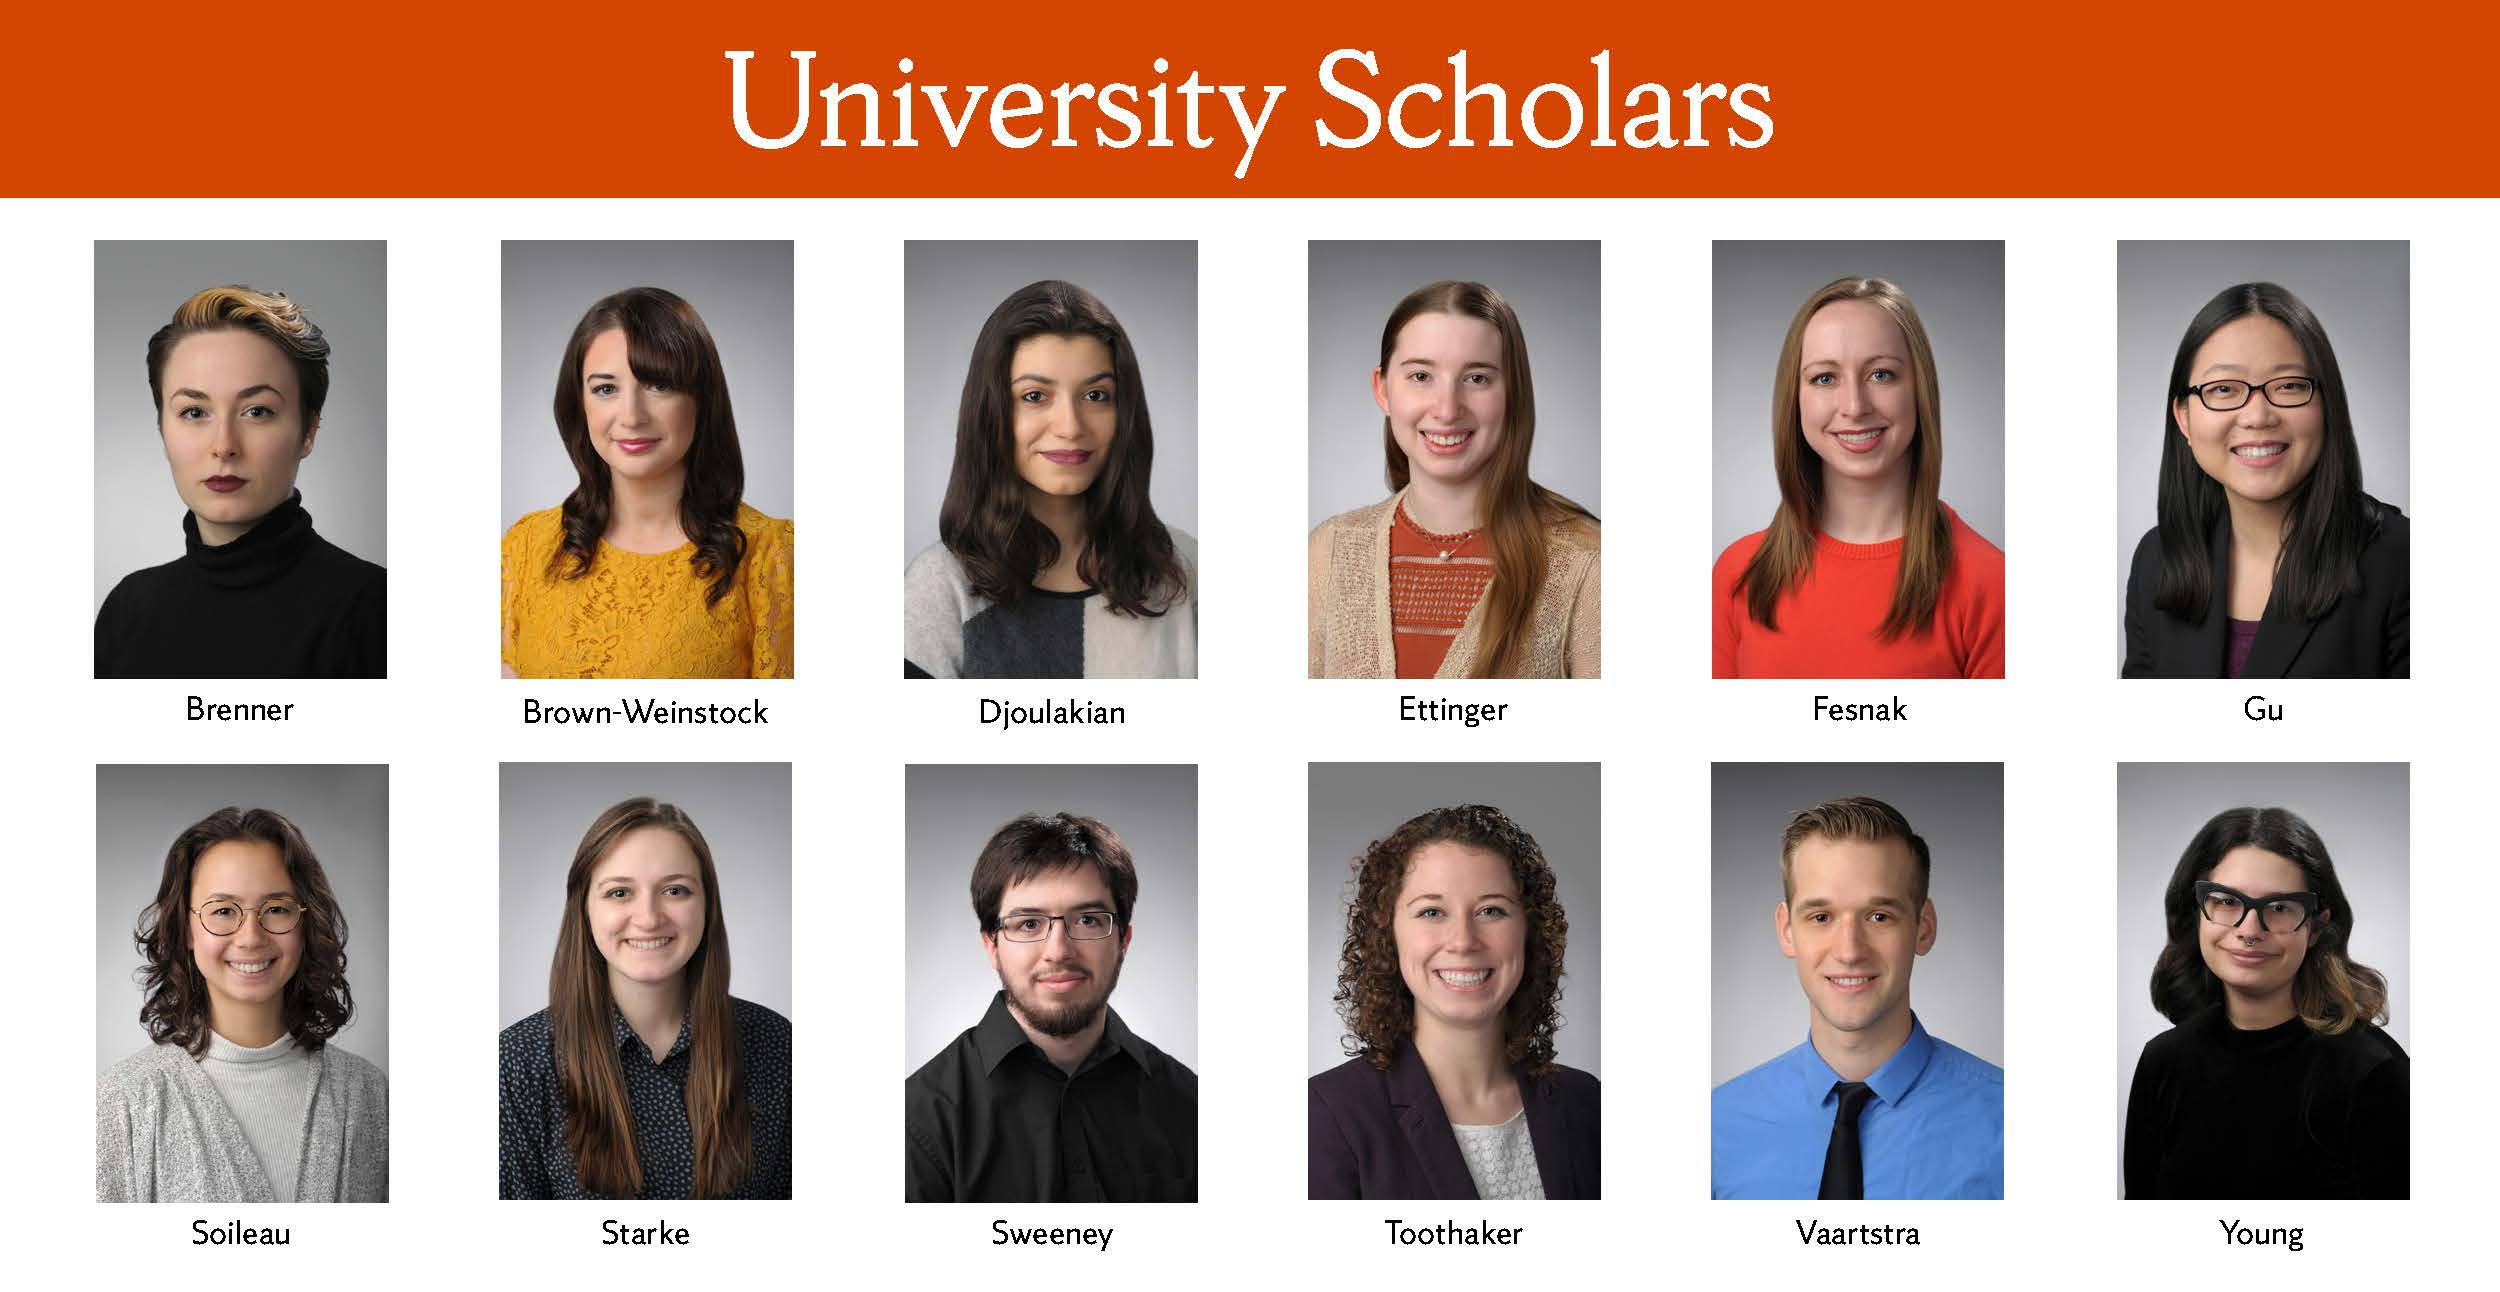 University Scholars photos